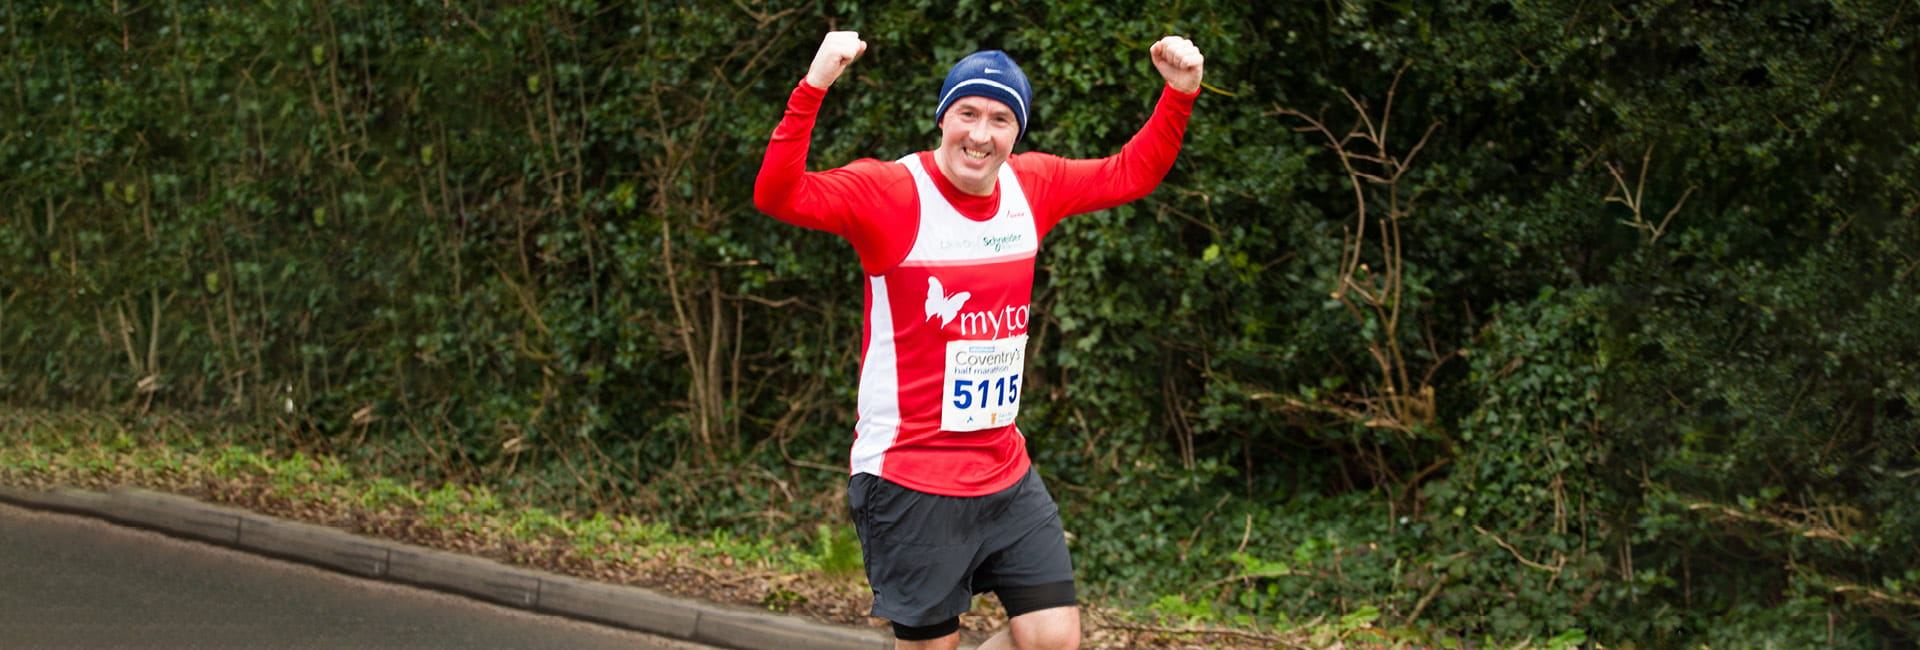 The Myton Hospices - Running Challenge Events Flex Slider